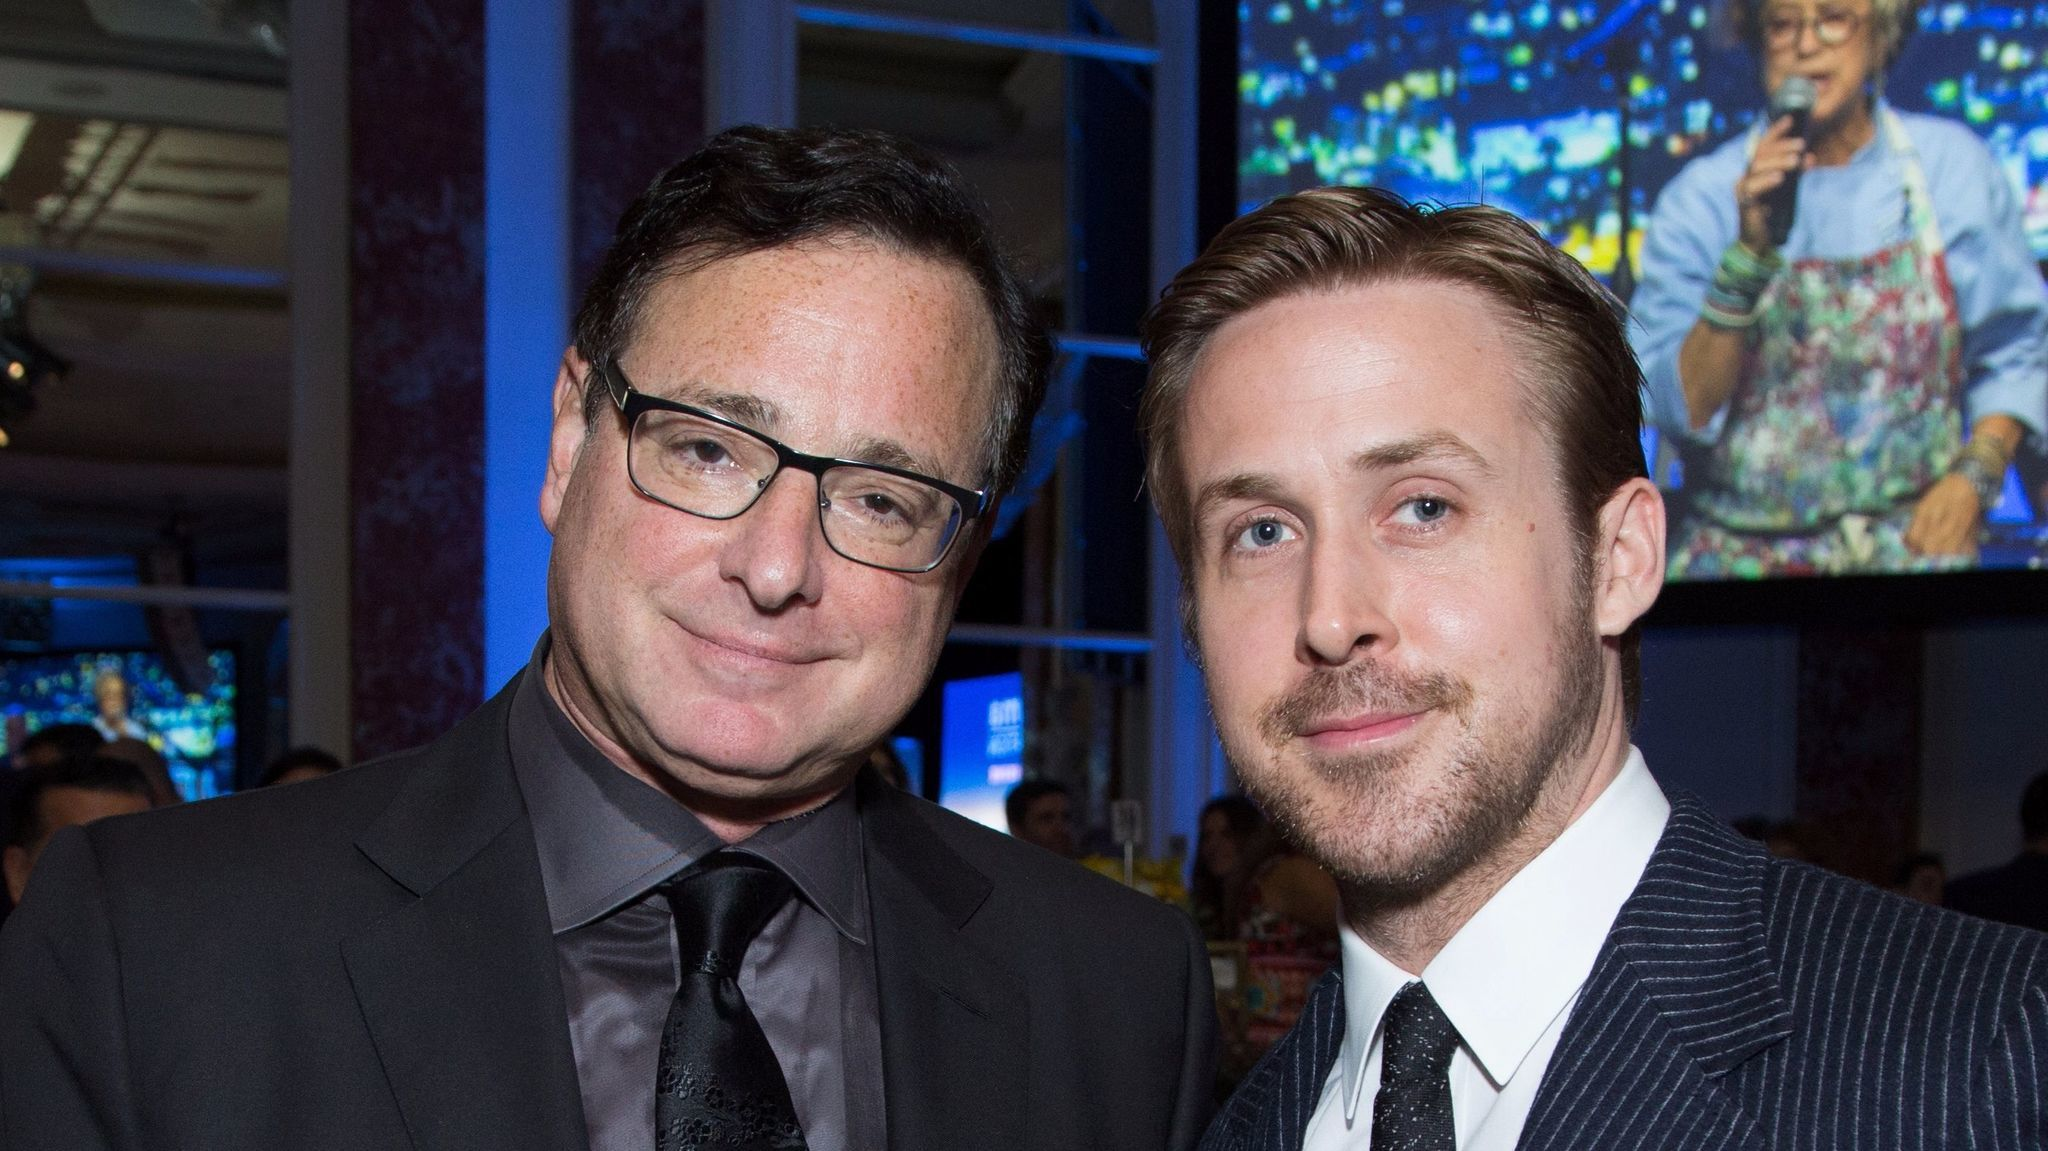 Bob Saget and Ryan Gosling.